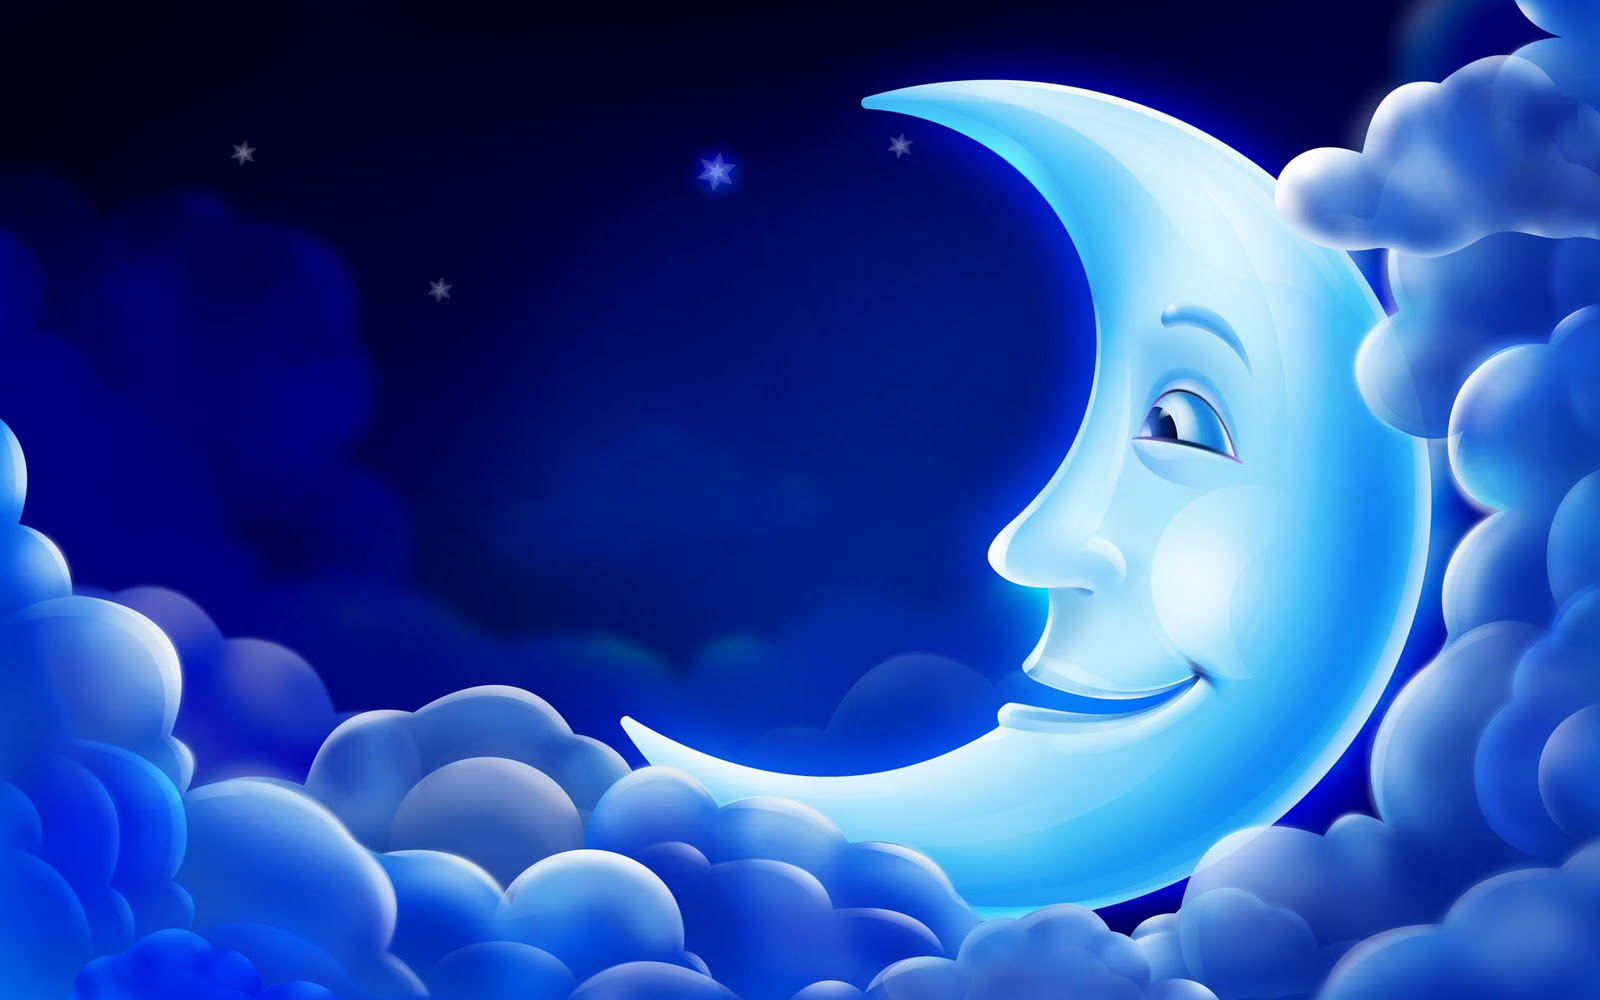 http://1.bp.blogspot.com/-6Djqr9xRyEA/T1Re5DTTwTI/AAAAAAAADeA/y1UEuVMPLLc/s1600/CG+3D+Animation+PC+Background+blue+moon+smile+sky++star+wallpapers.jpg